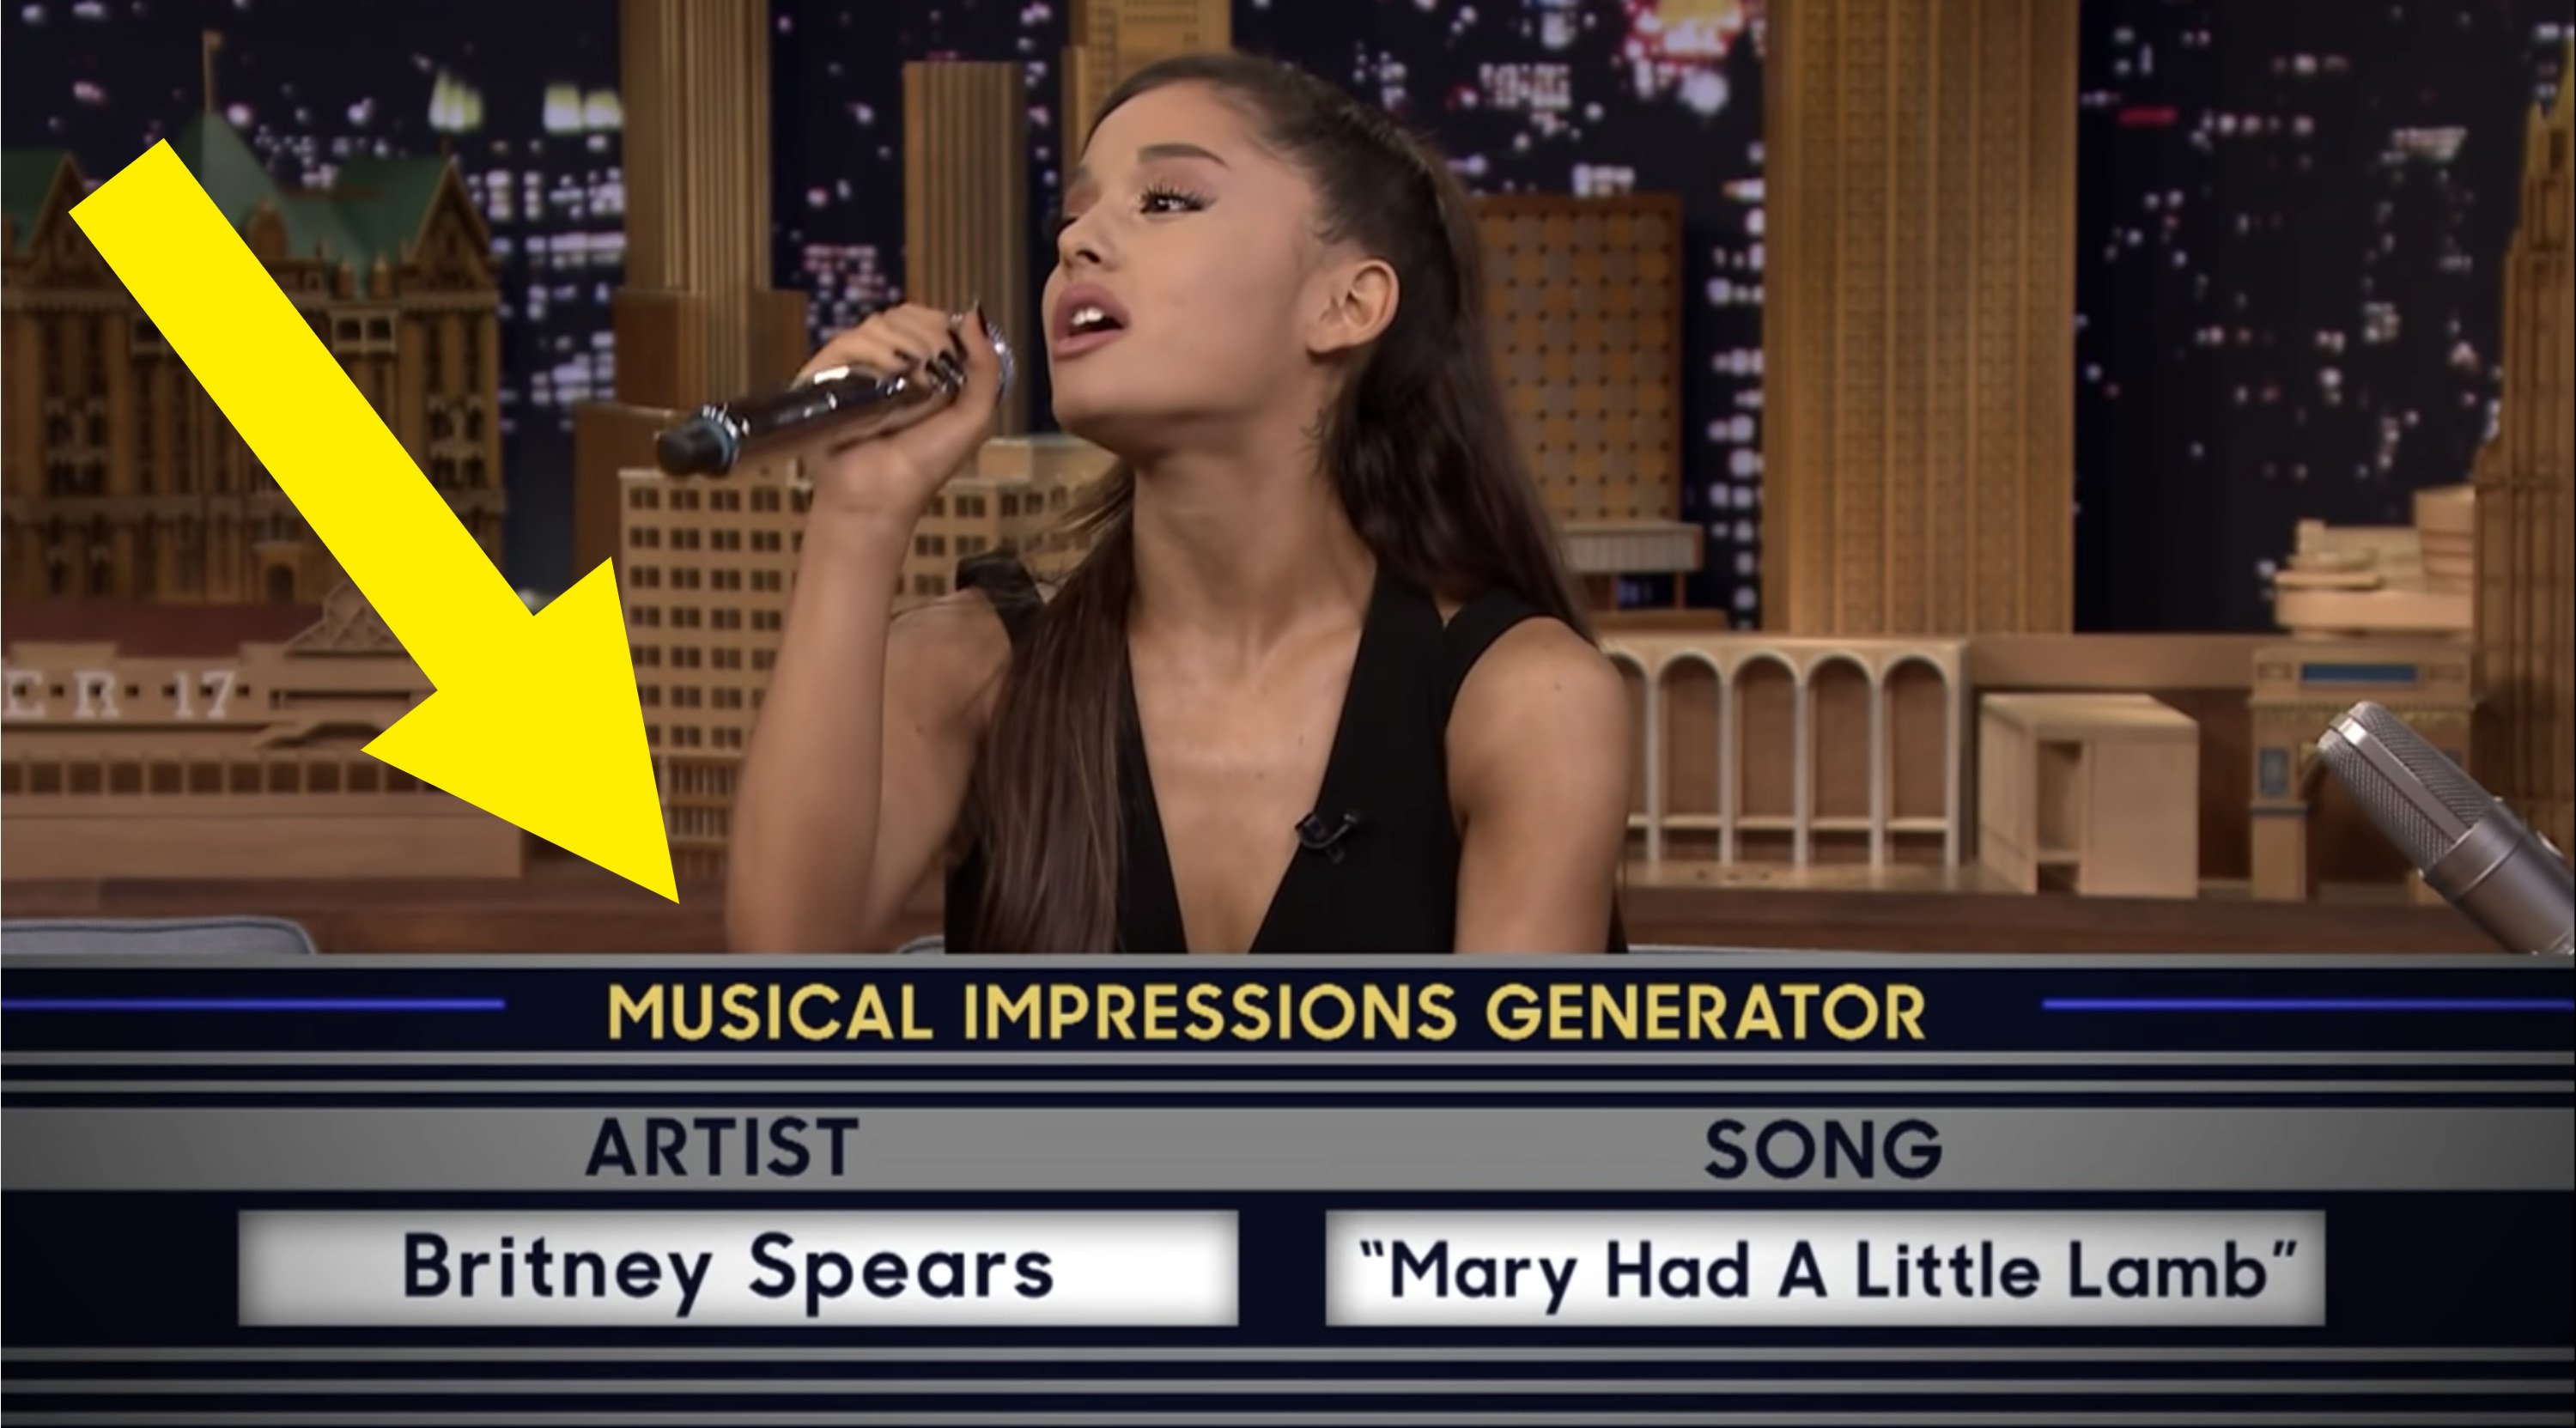 An arrow pointing towards information at the bottom of the screen during a Jimmy Fallon segment